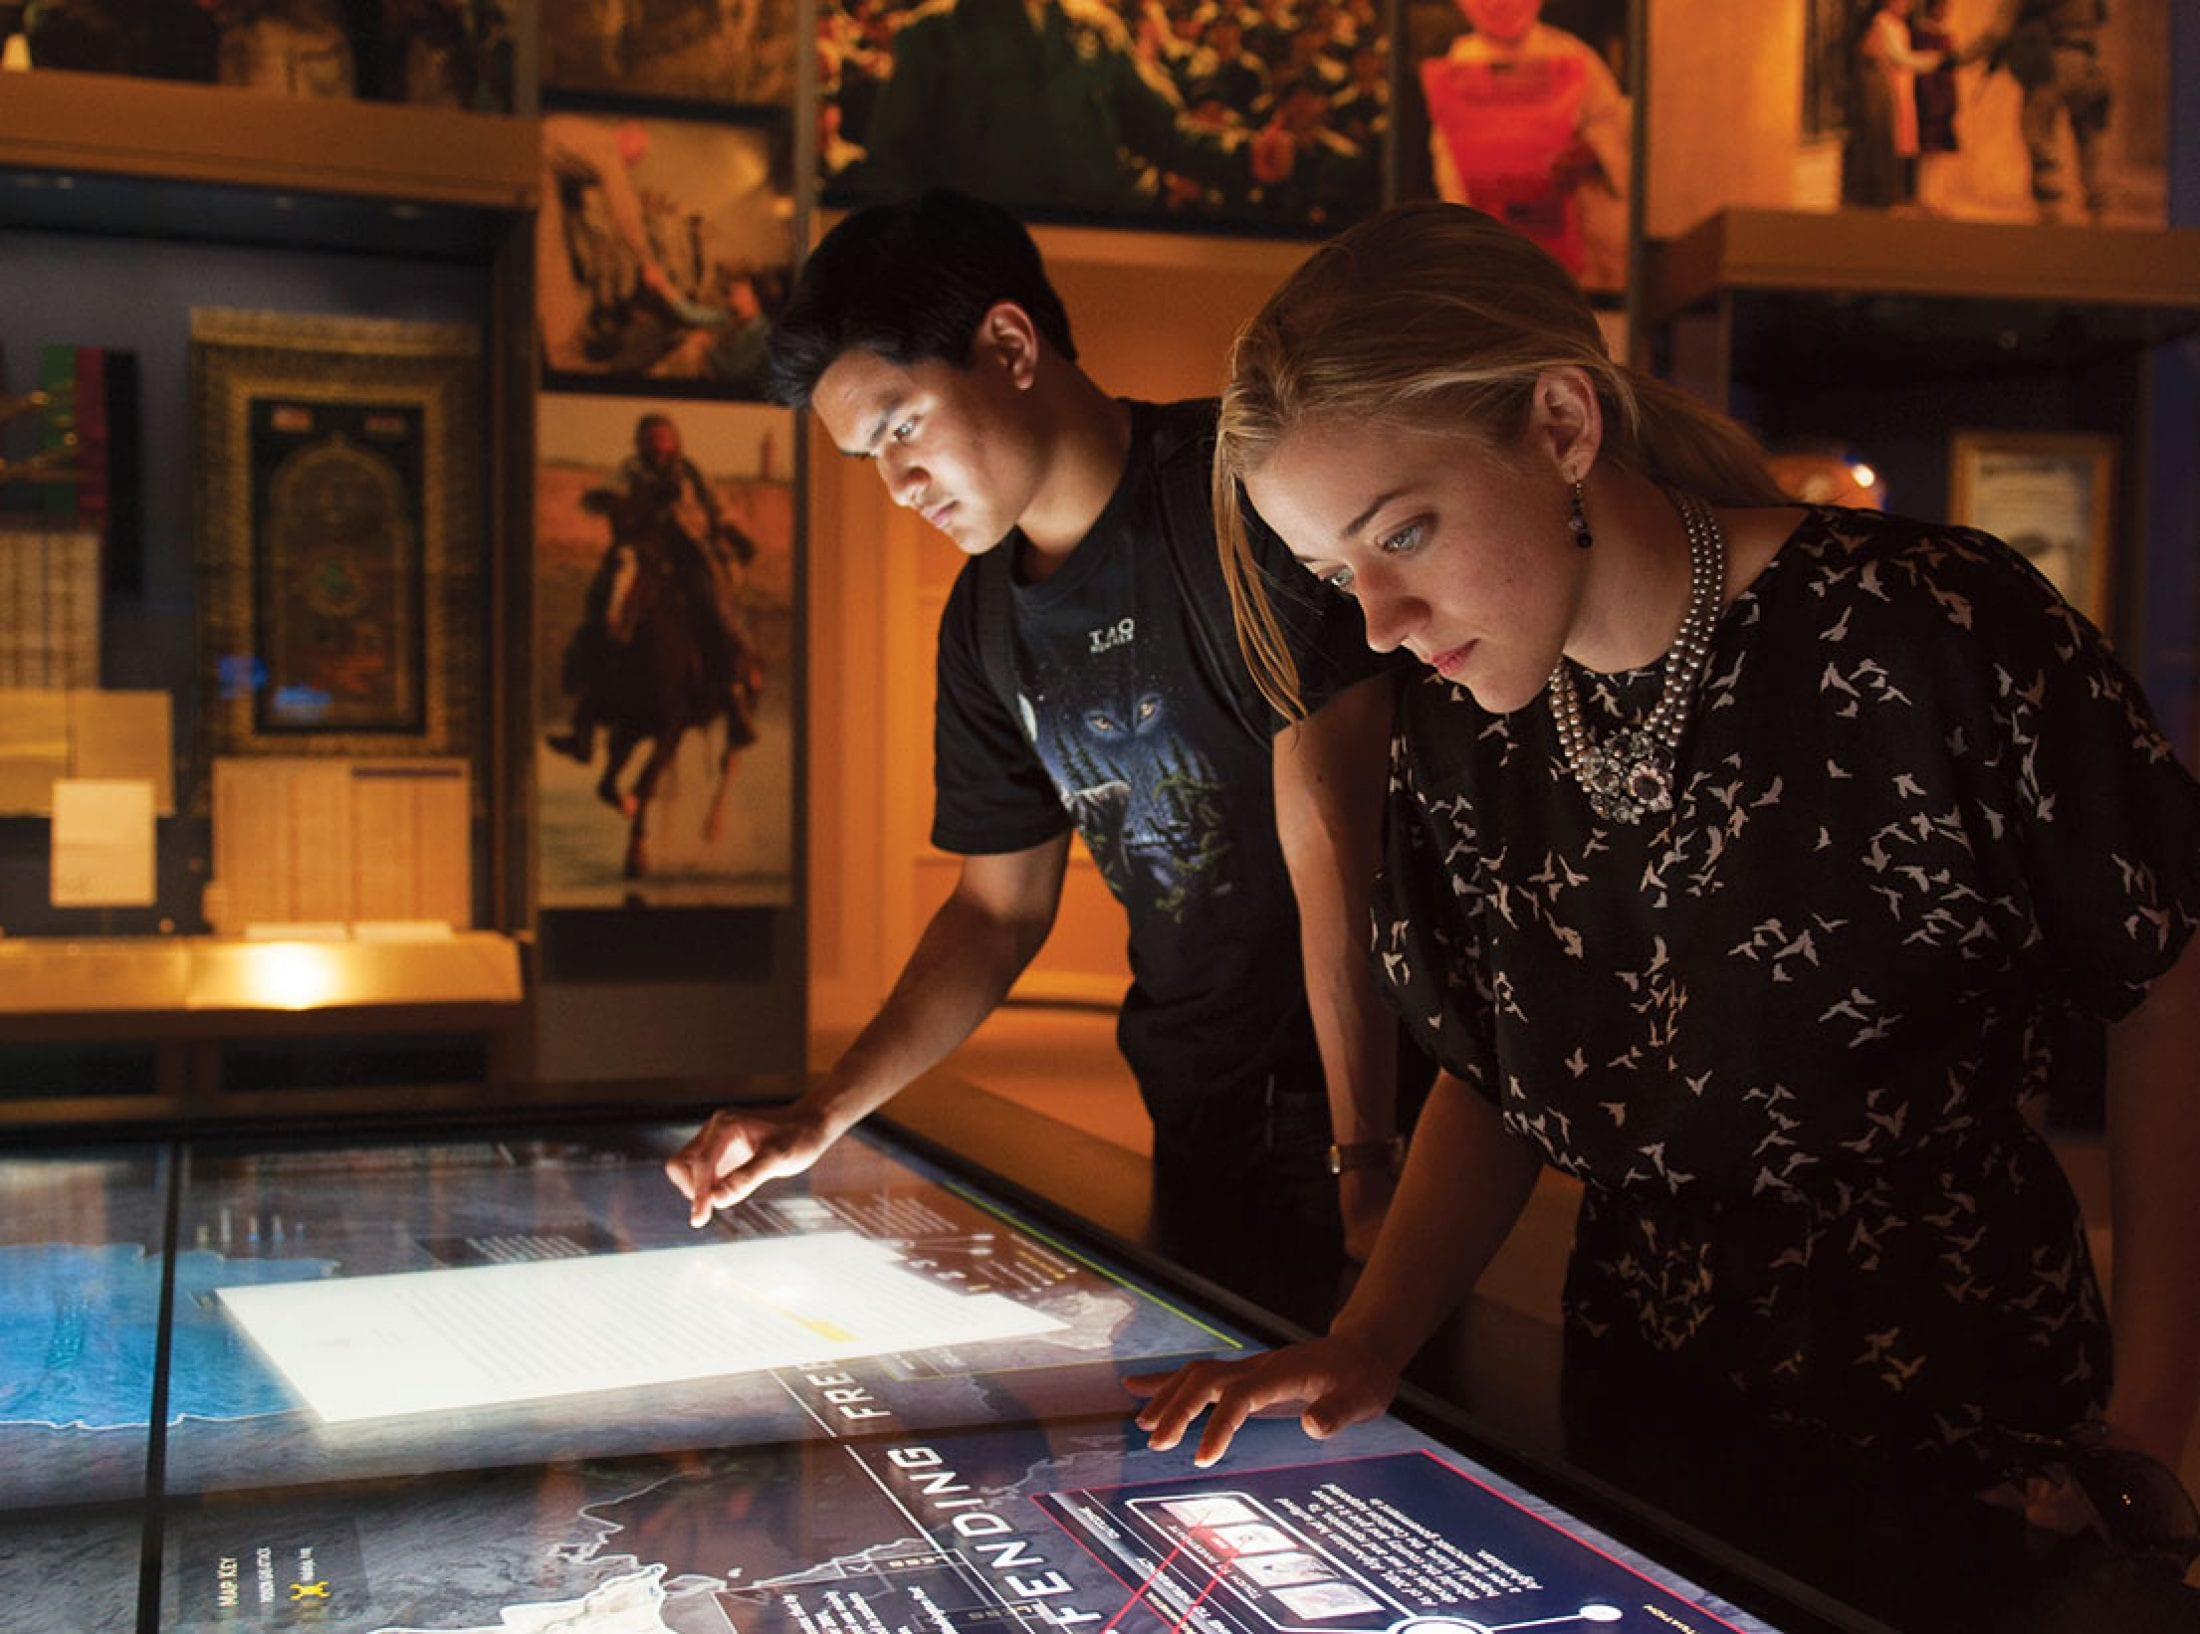 Students explore interactive displays in the Bush Presidential Library and Museum.